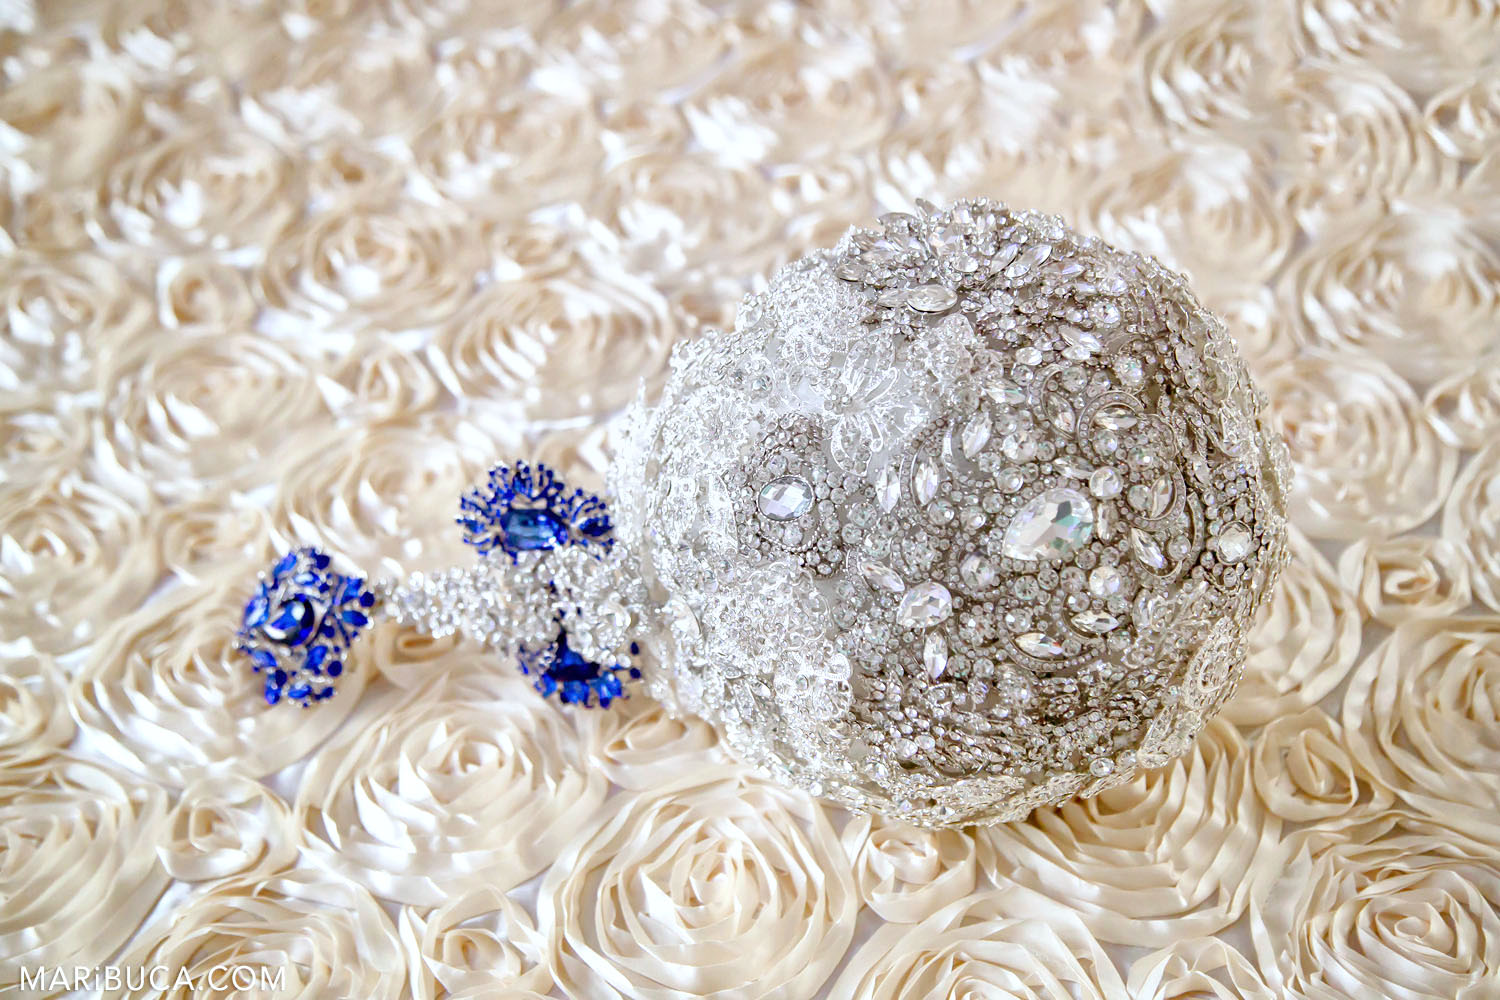 A bridal bouquet with glass and blue stones lies on a textured white tablecloth in the form of roses.